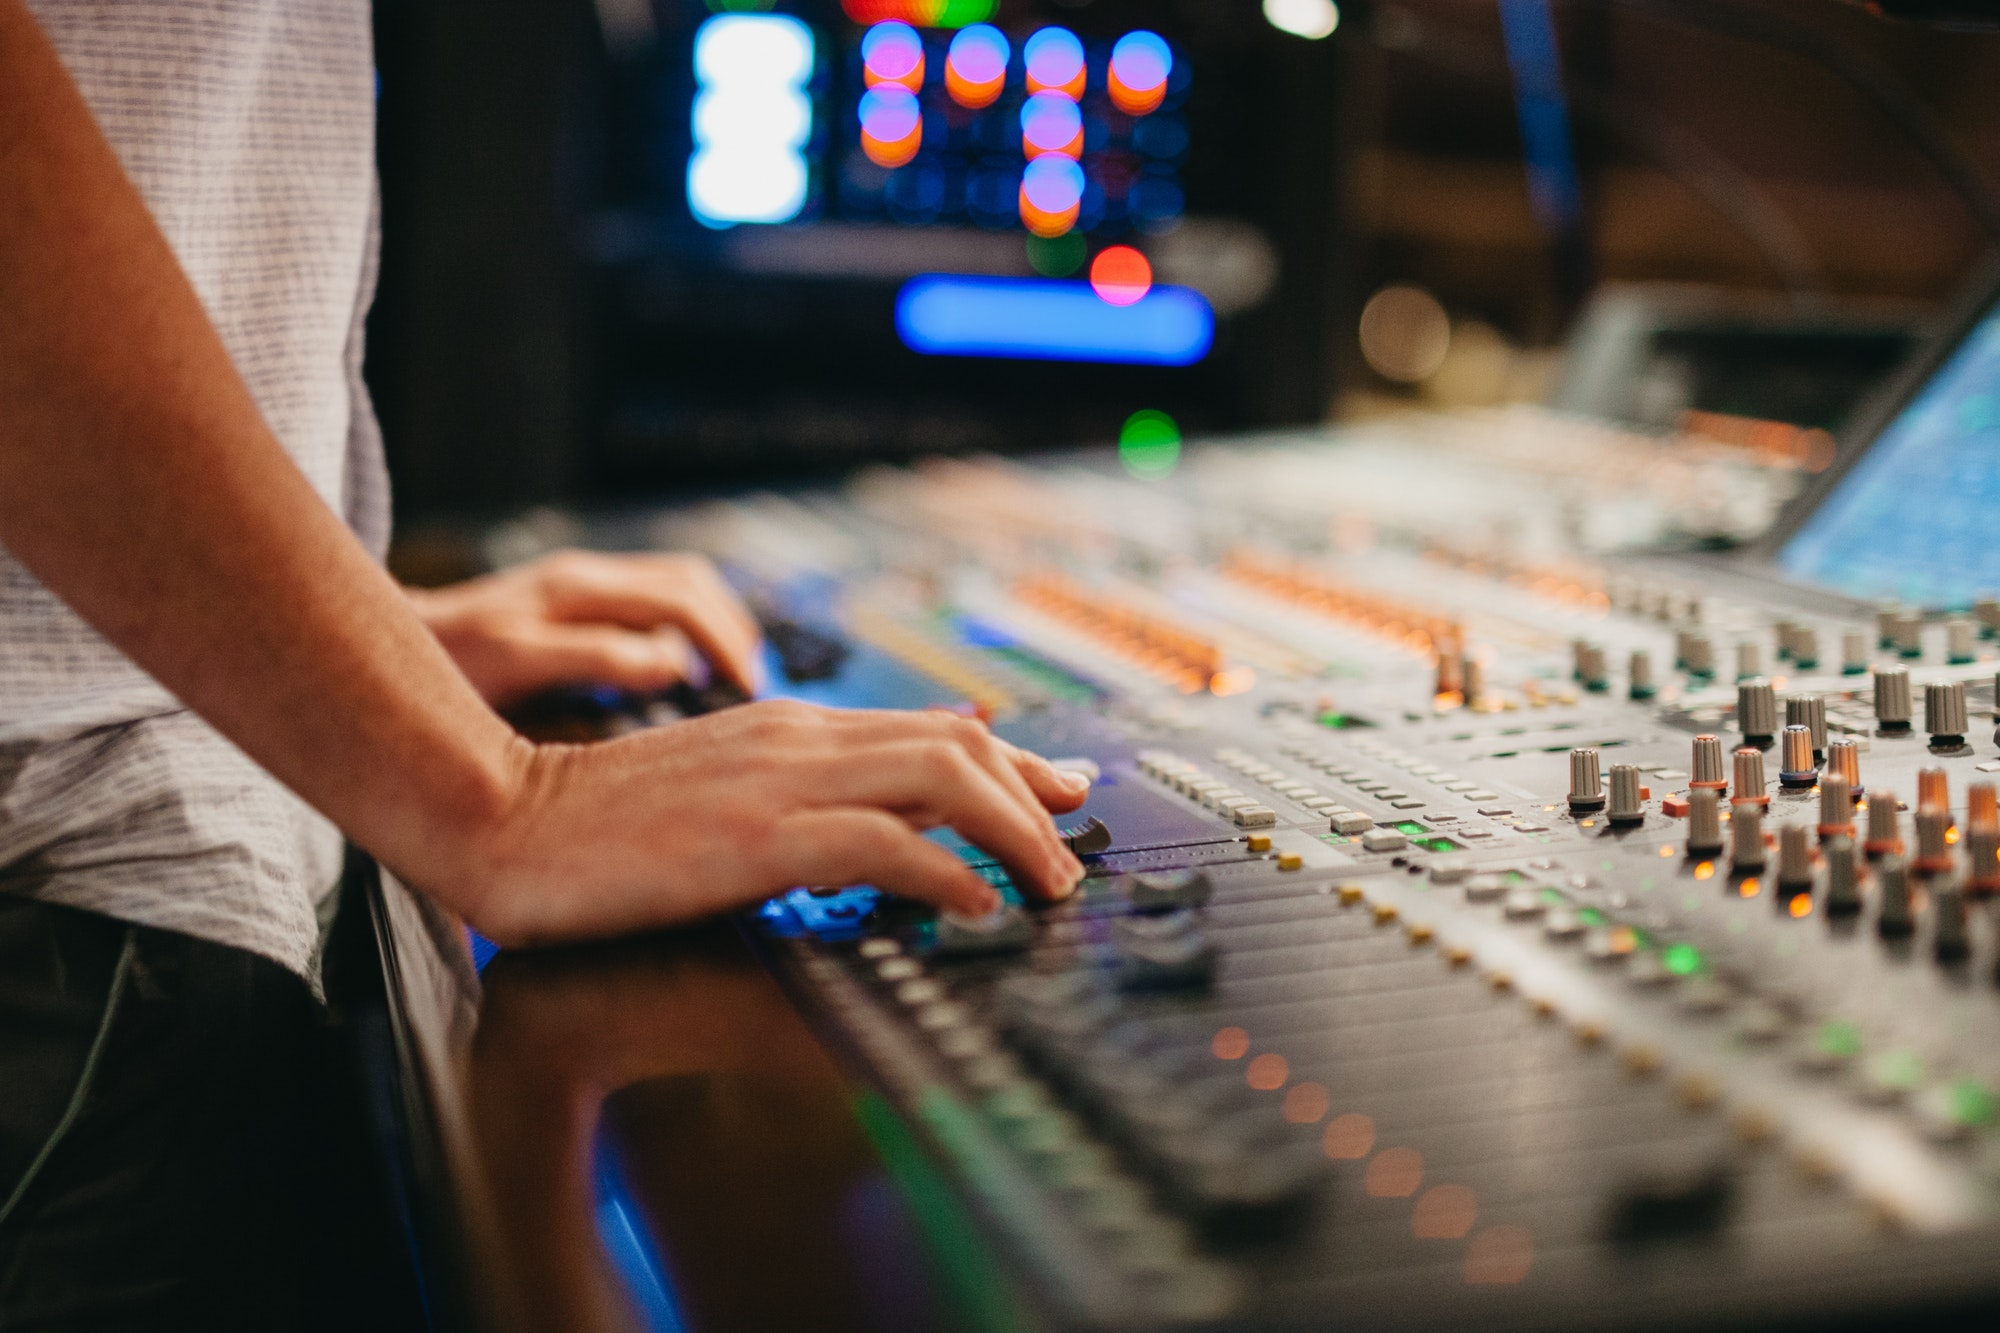 A sound tech works on a mixing board changing levels of the music production.